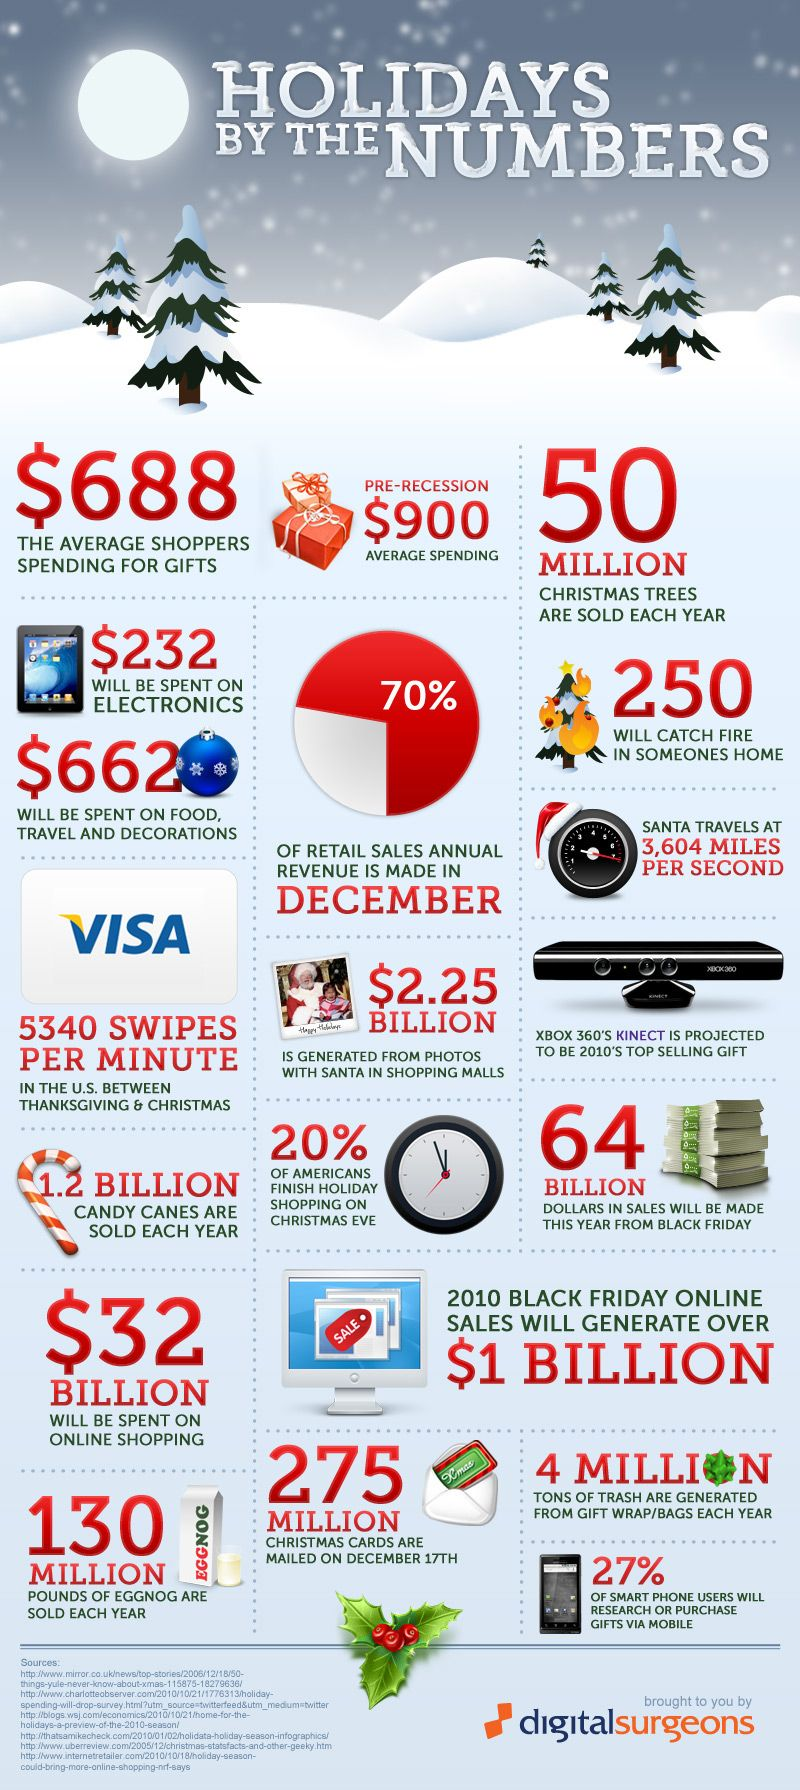 Holidays by the numbers, an infographic